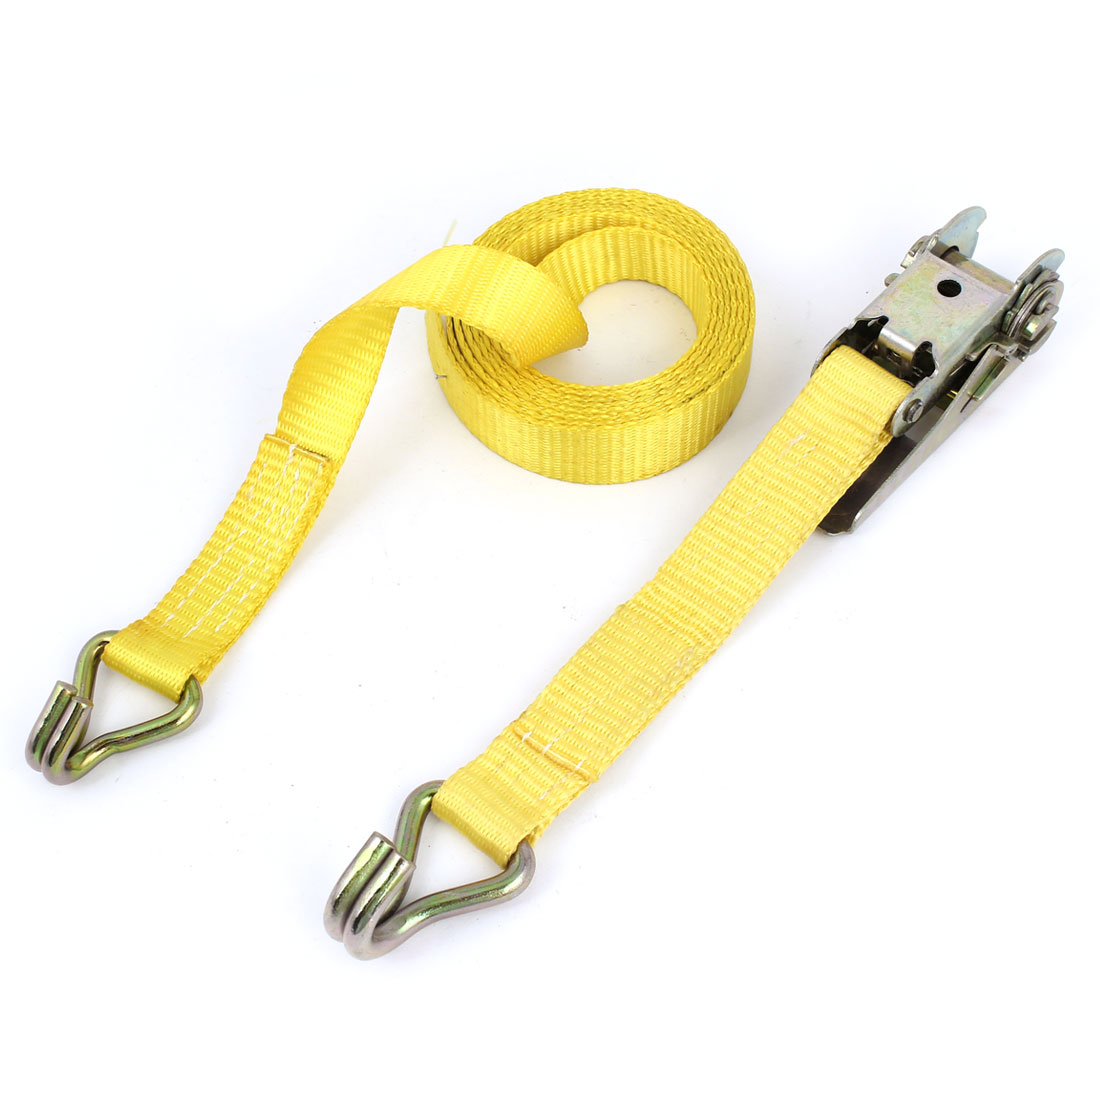 "Yellow 10ft x 1"" 1500 lbs Load Limit Double J-Hooks Ratcheting Tie-Down Strap"